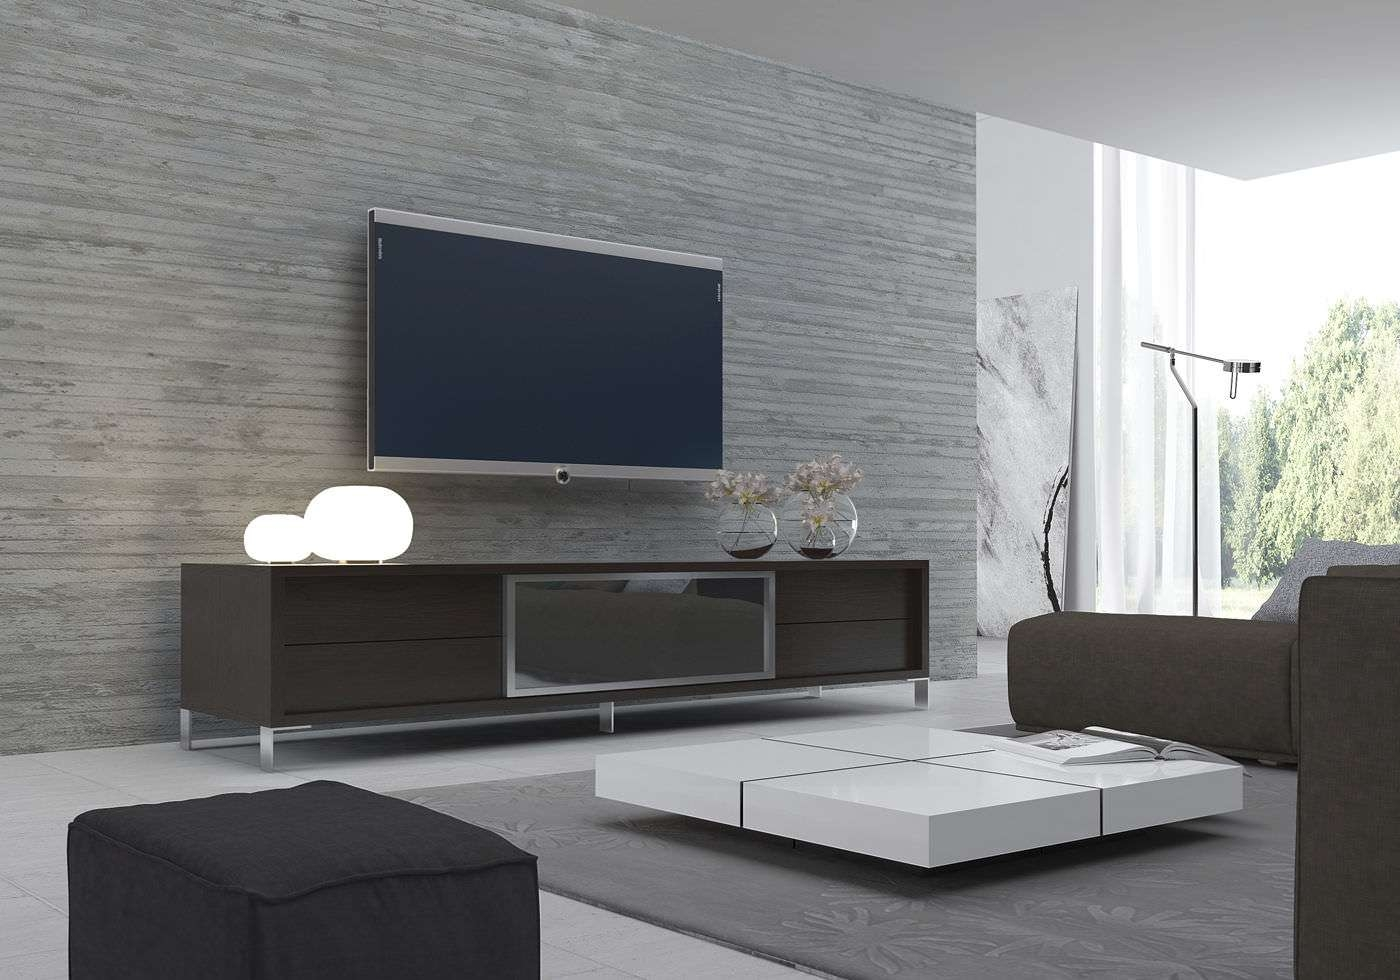 Contemporary Tv Cabinet / Wooden – Lexington – Modloft With Regard To Modern Tv Cabinets (View 10 of 20)